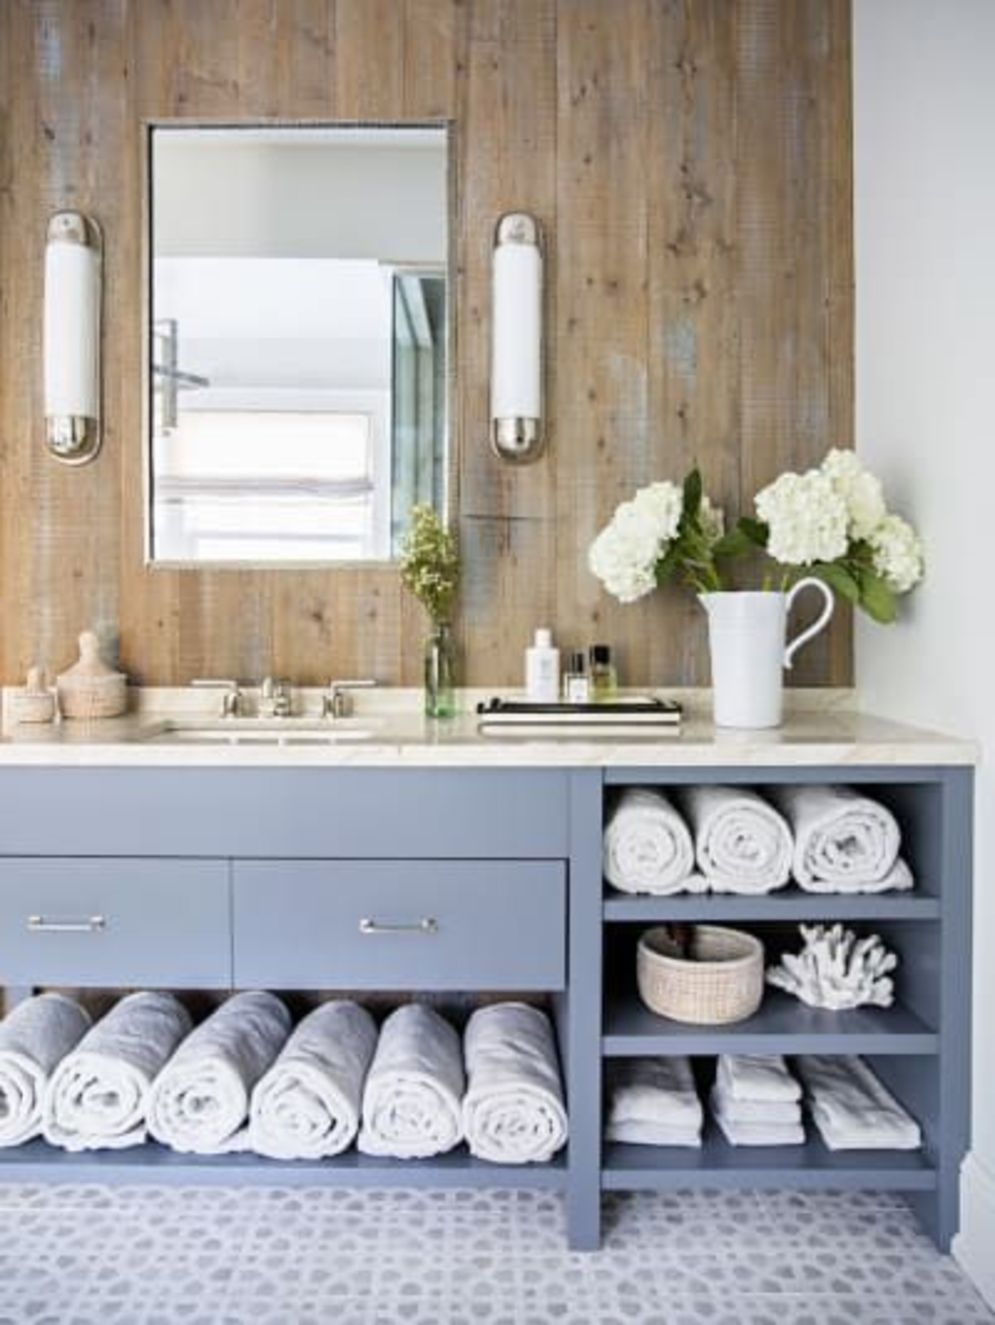 Timeless bathroom designs with wood accents enhancing more natural vibes Image 21